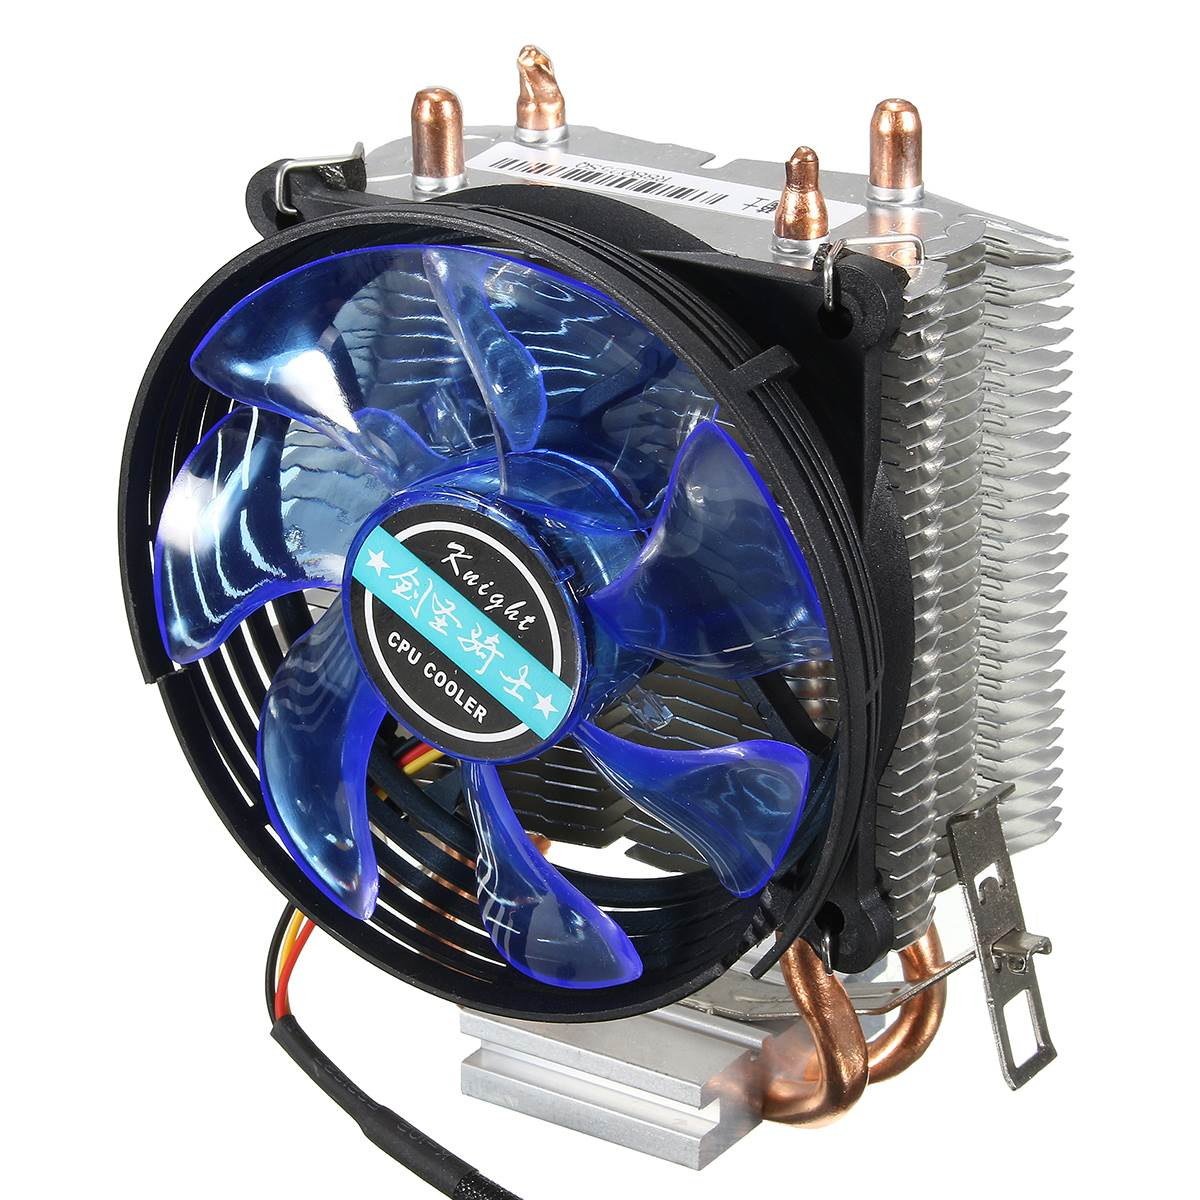 95x95x25mm LED Cooler Cpu Fan Heatsink Copper for Intel LGA775/1156/1155 for AMD AM2/AM2+/AM3 2 heatpipes blue led cpu cooling fan 4pin 120mm cpu cooler fan radiator aluminum heatsink for lga 1155 1156 1150 775 amd